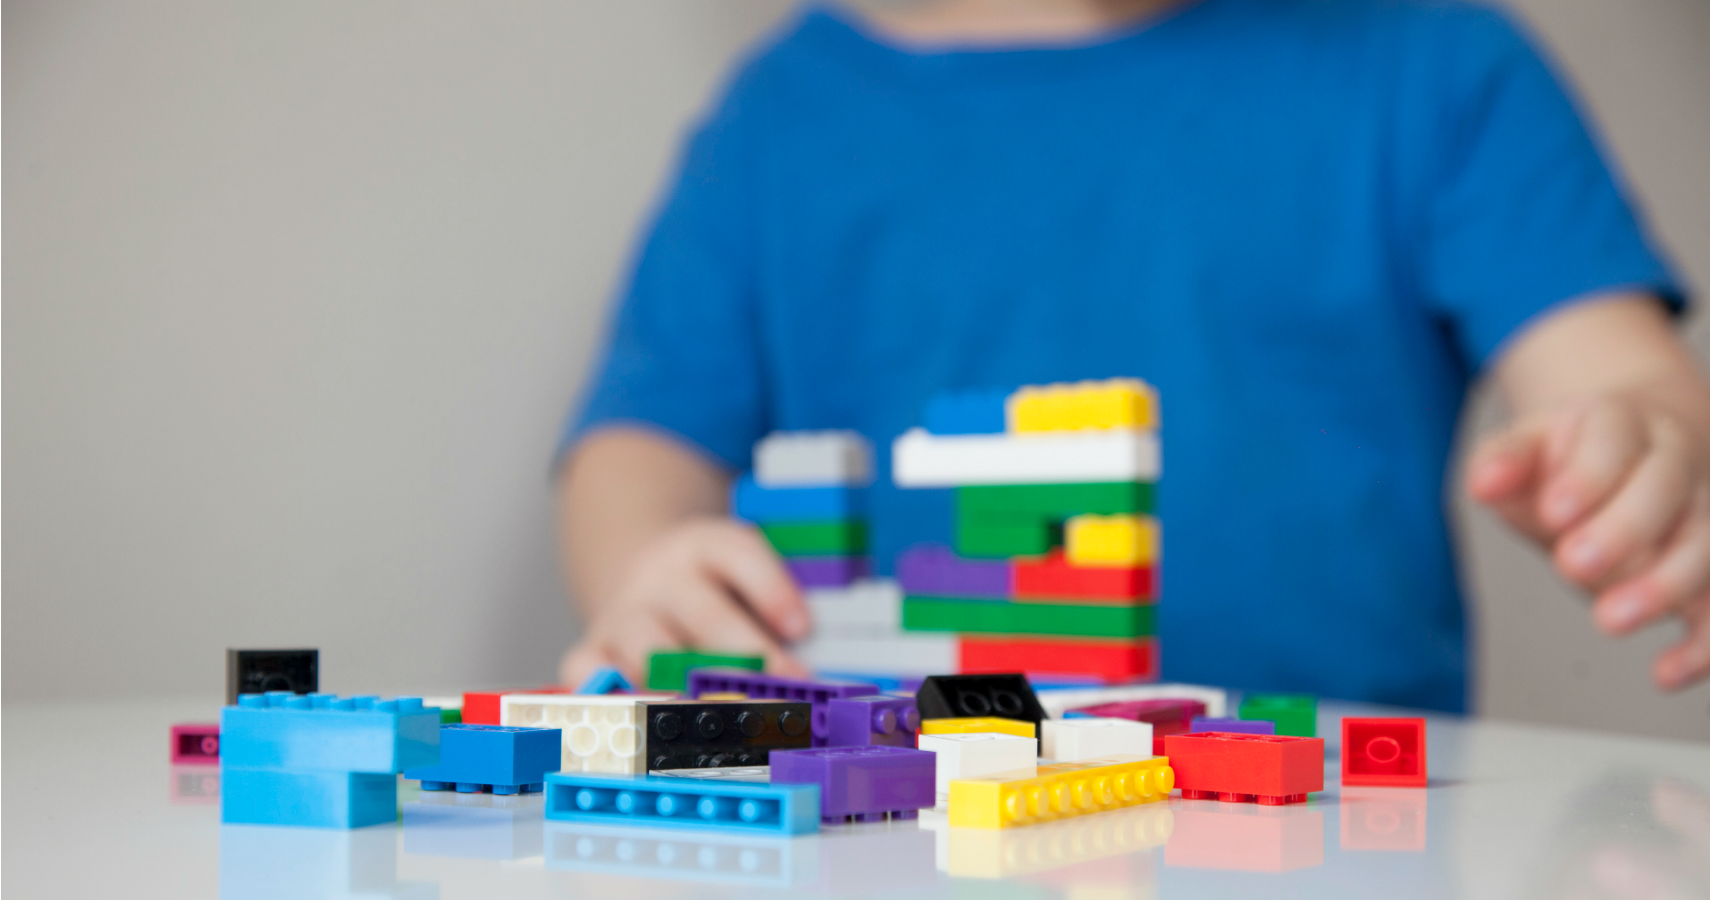 Kids Can Design Their Own Lego Creations Using This Fun